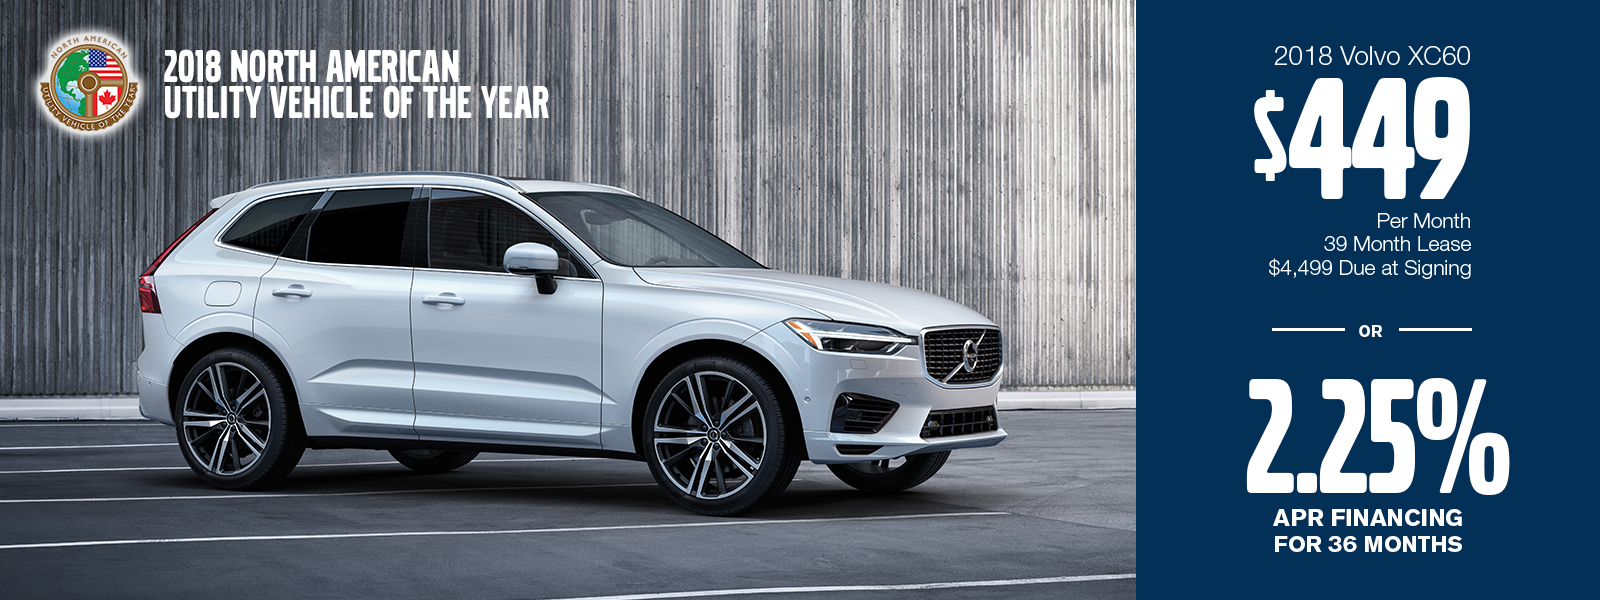 2018 XC60 Lease or Finance Special at Volvo Cars Gilbert